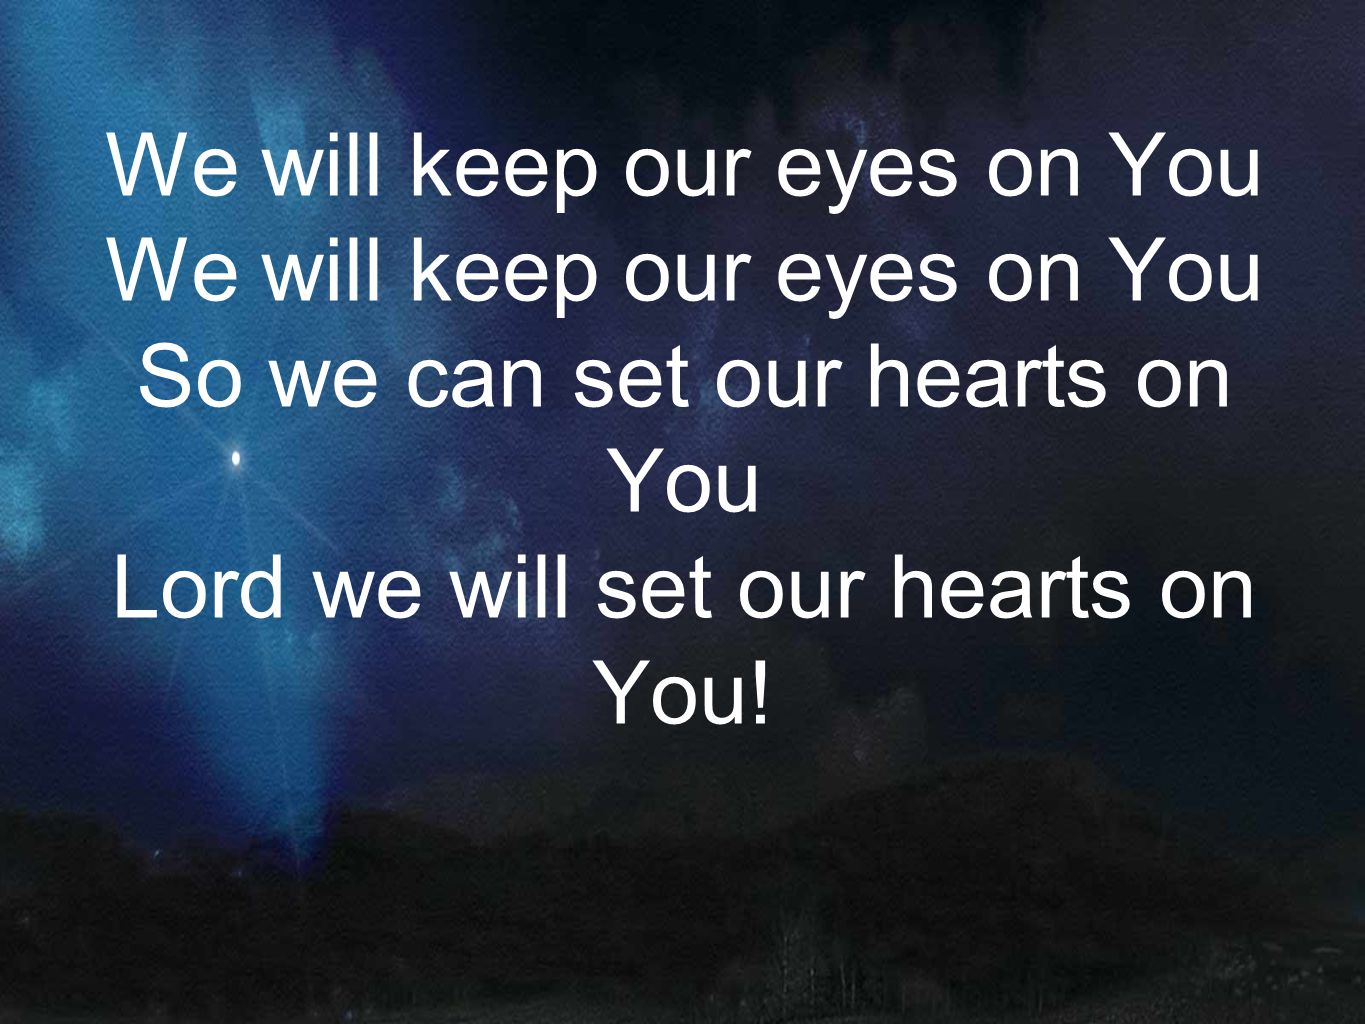 We will keep our eyes on You So we can set our hearts on You Lord we will set our hearts on You!